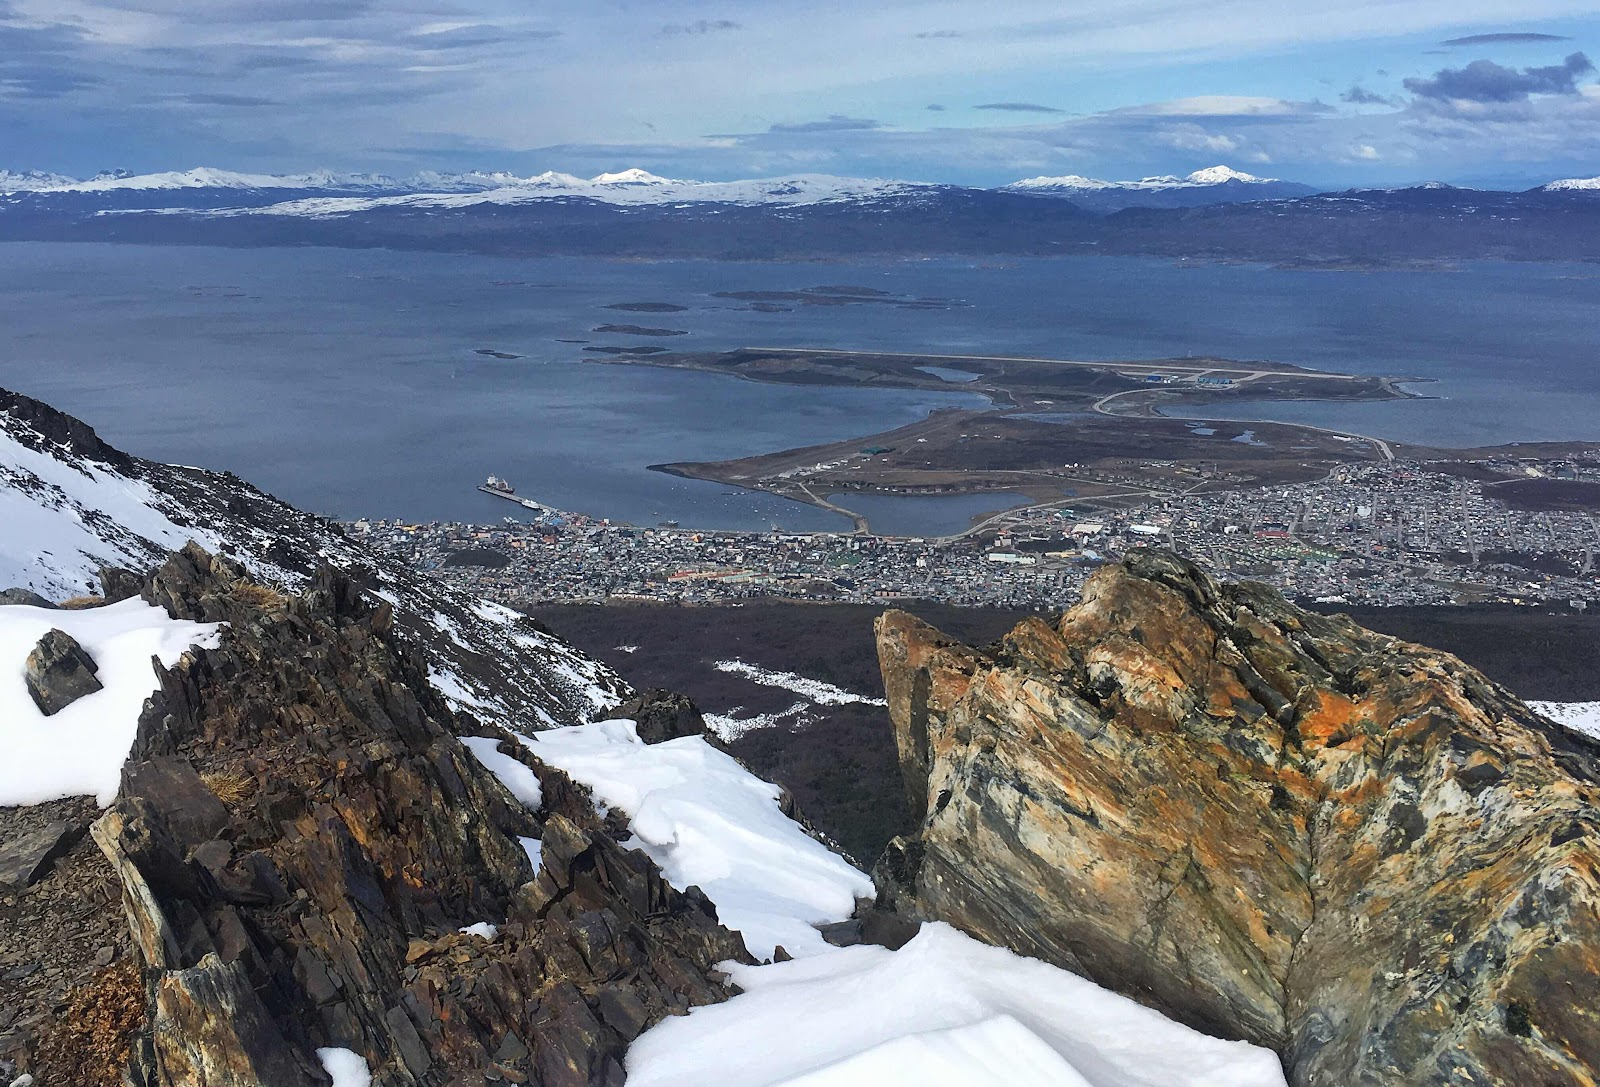 View over Ushuaia from summit of Cerro del Medio. Argentina